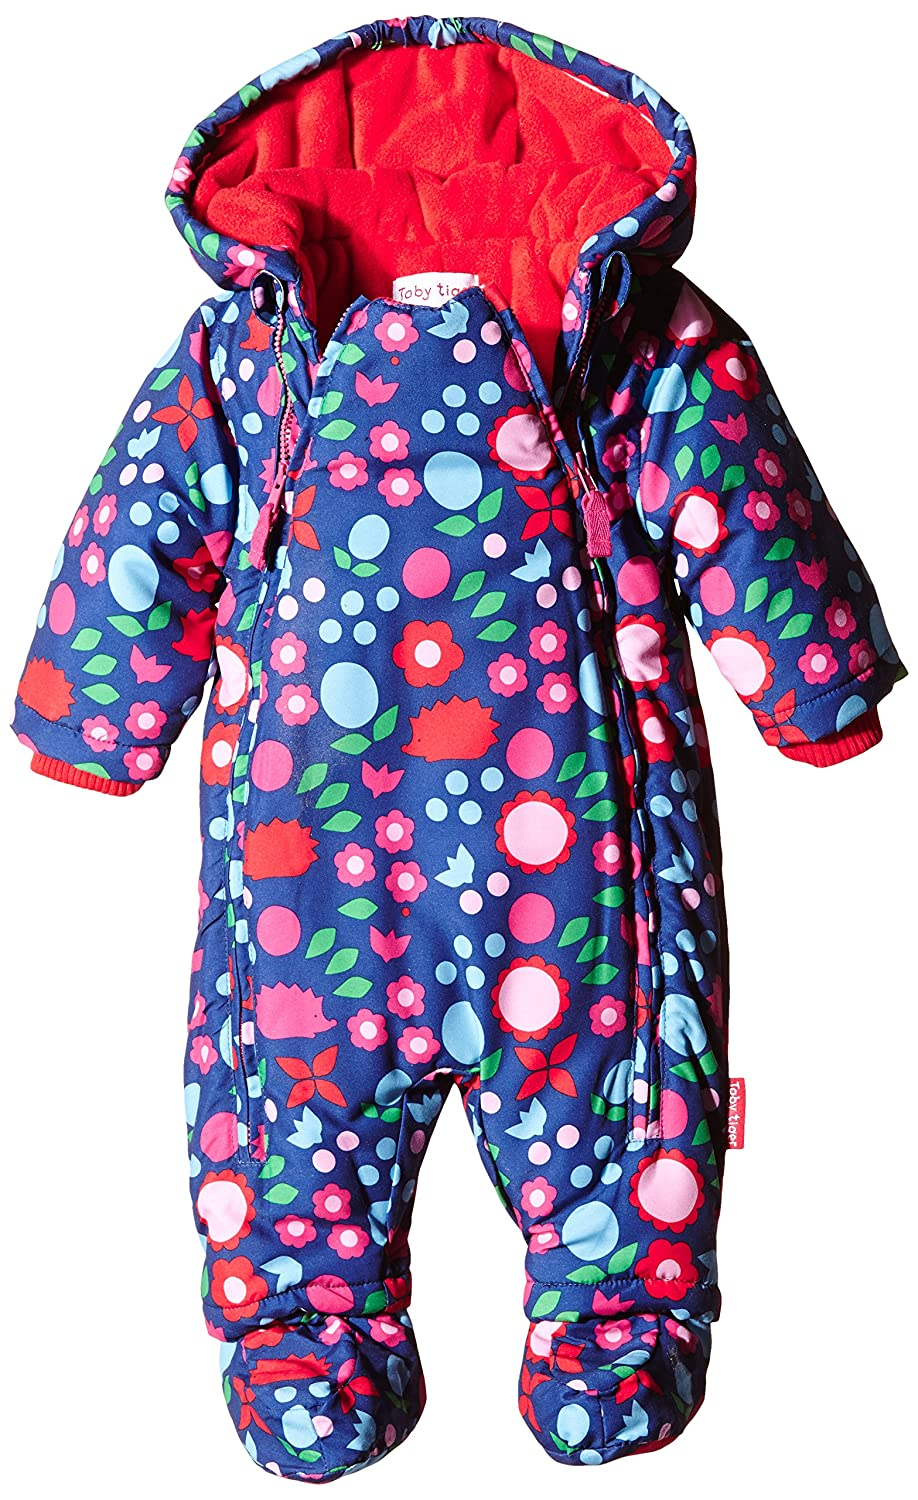 Toby Tiger - Fleece Lined with Waterproff Outer Hedgehog Snowsuit with Detachable Feet, Tuta da Neve Bimbo 0-24 SNOWHOG